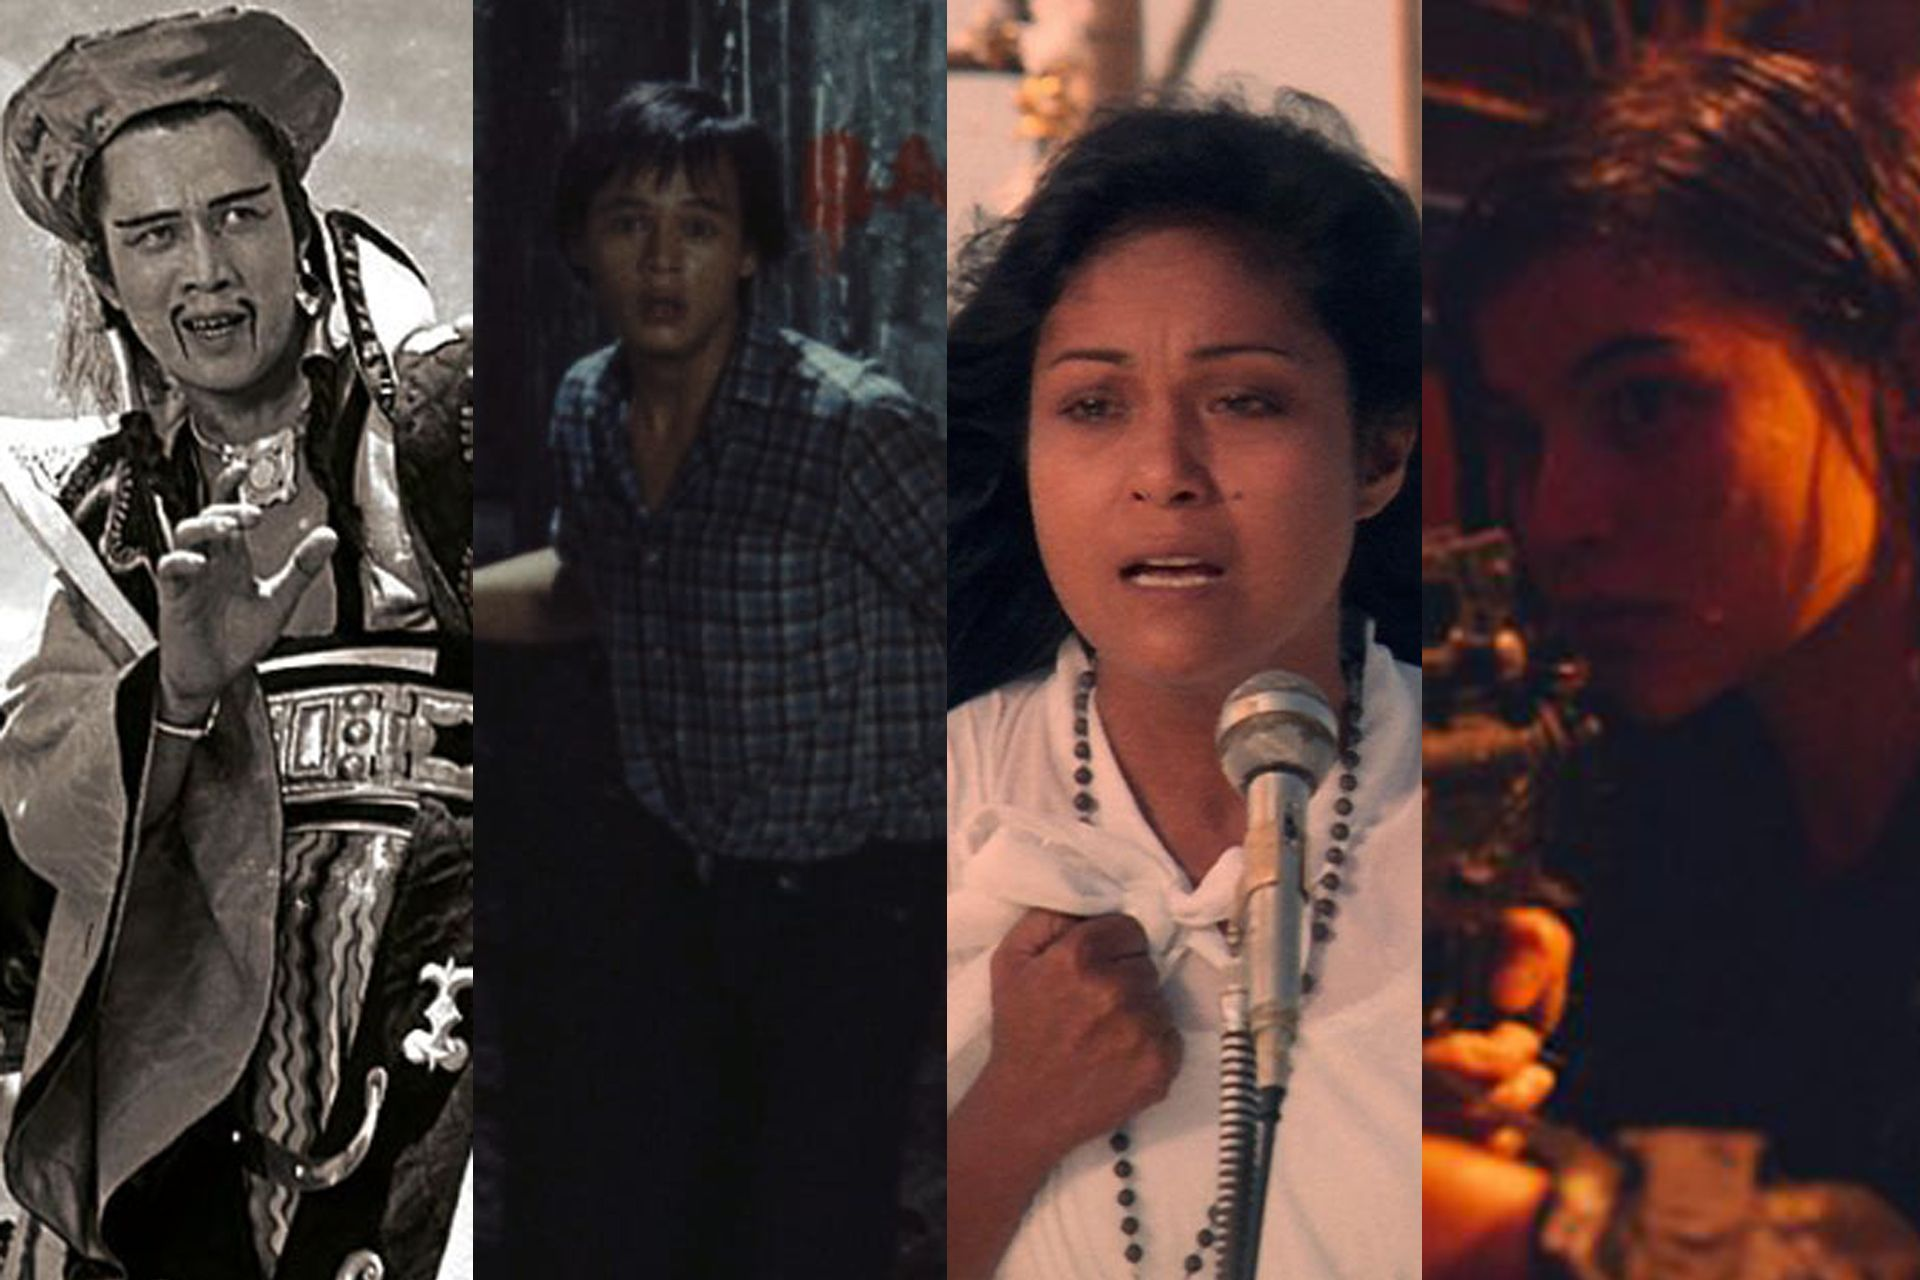 Cine Sandaan 10 Iconic Films That Shaped Philippine Cinema Tatler Philippines